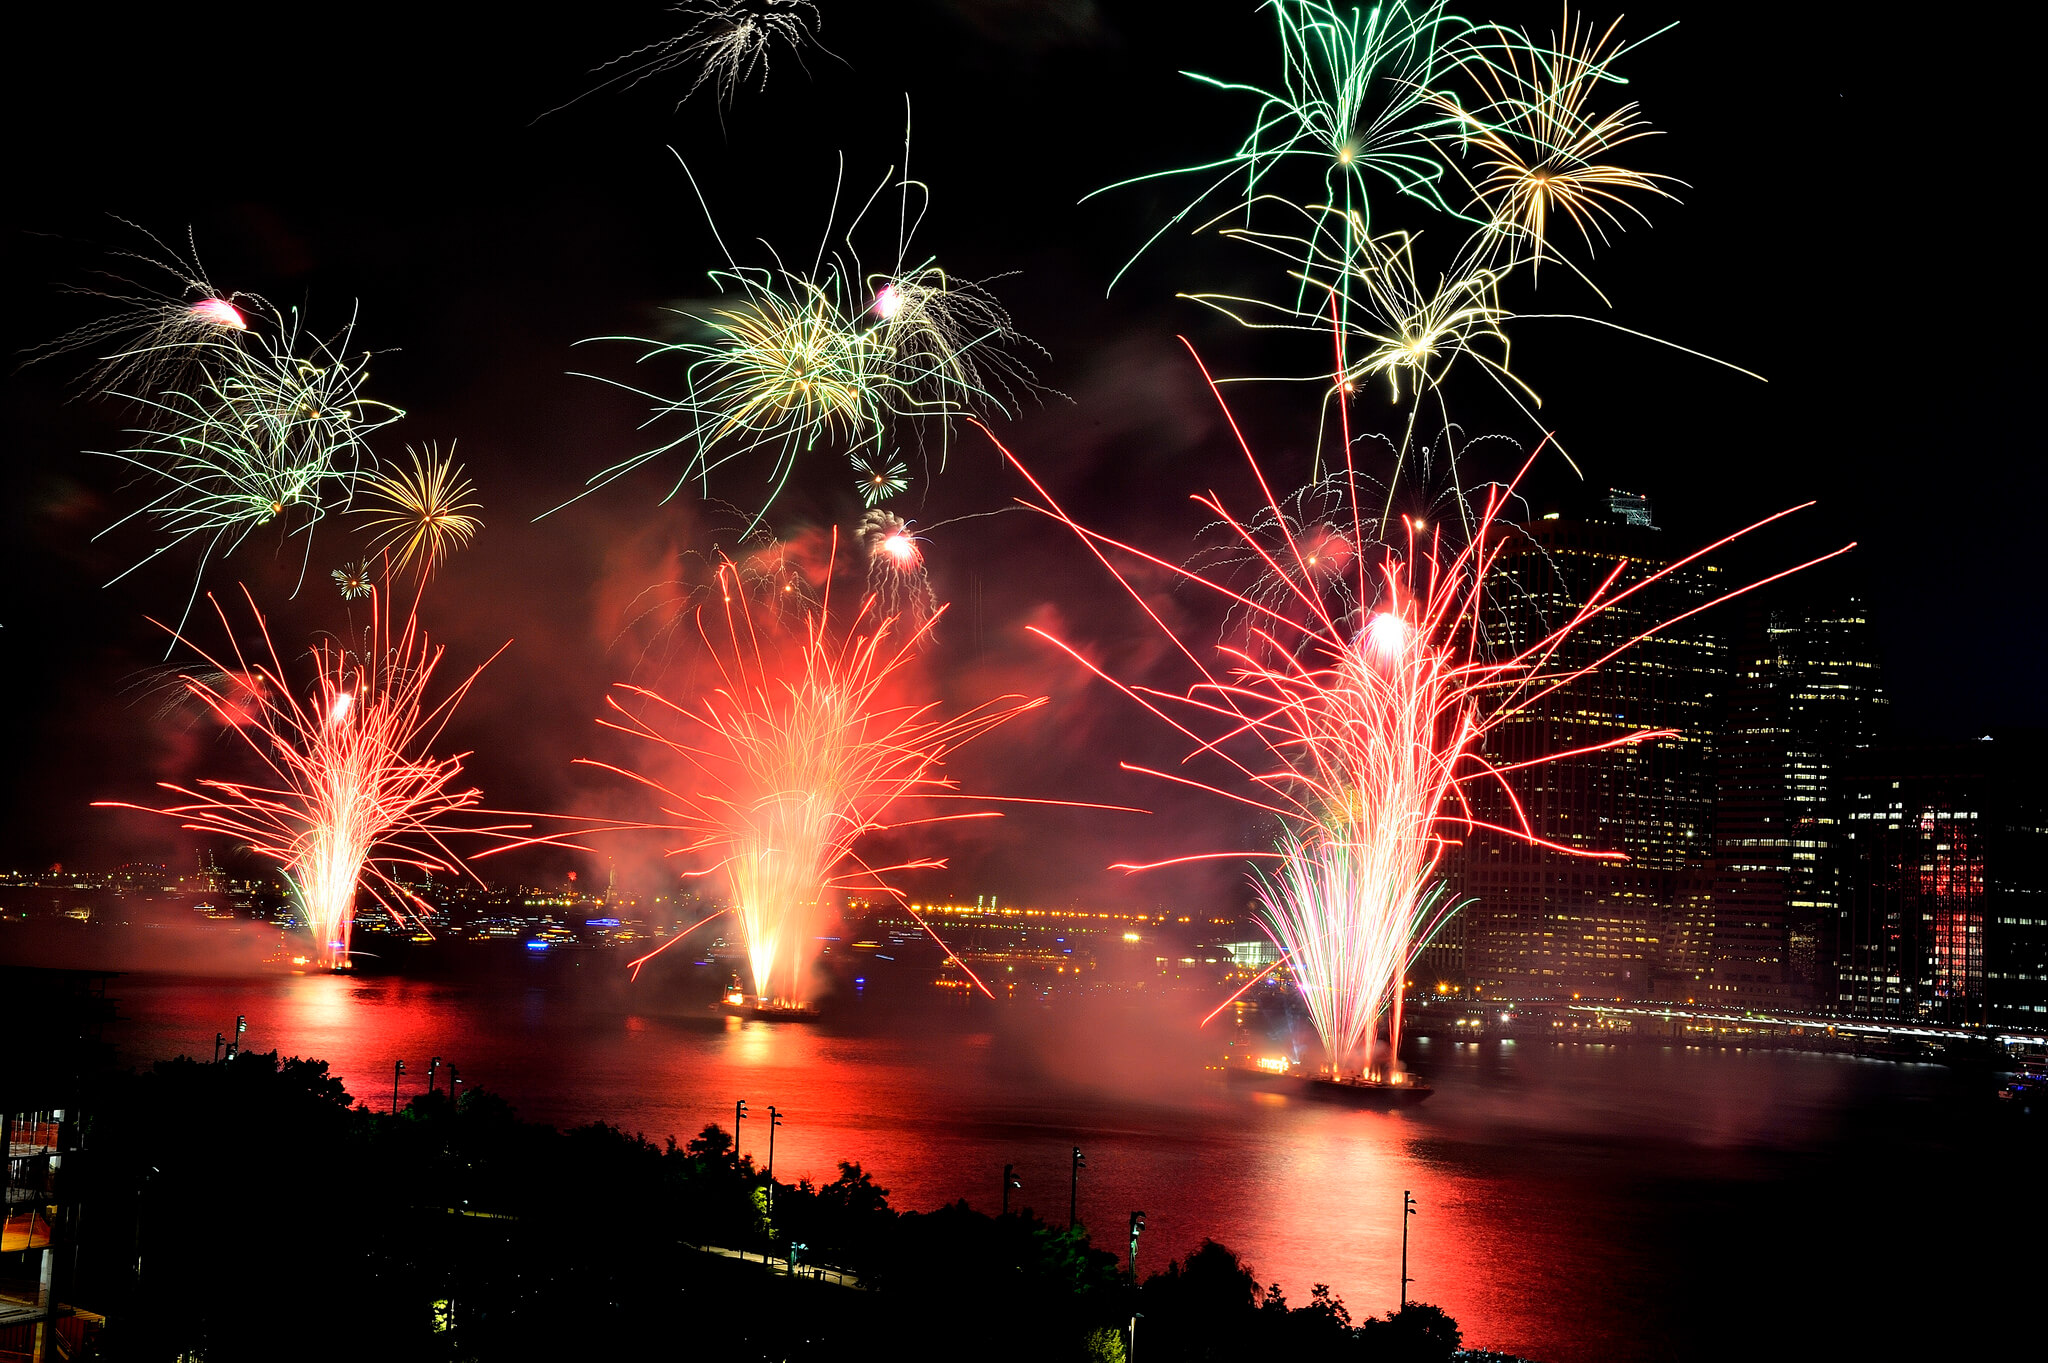 Top 7 Places For Fireworks And Fun On July 4th